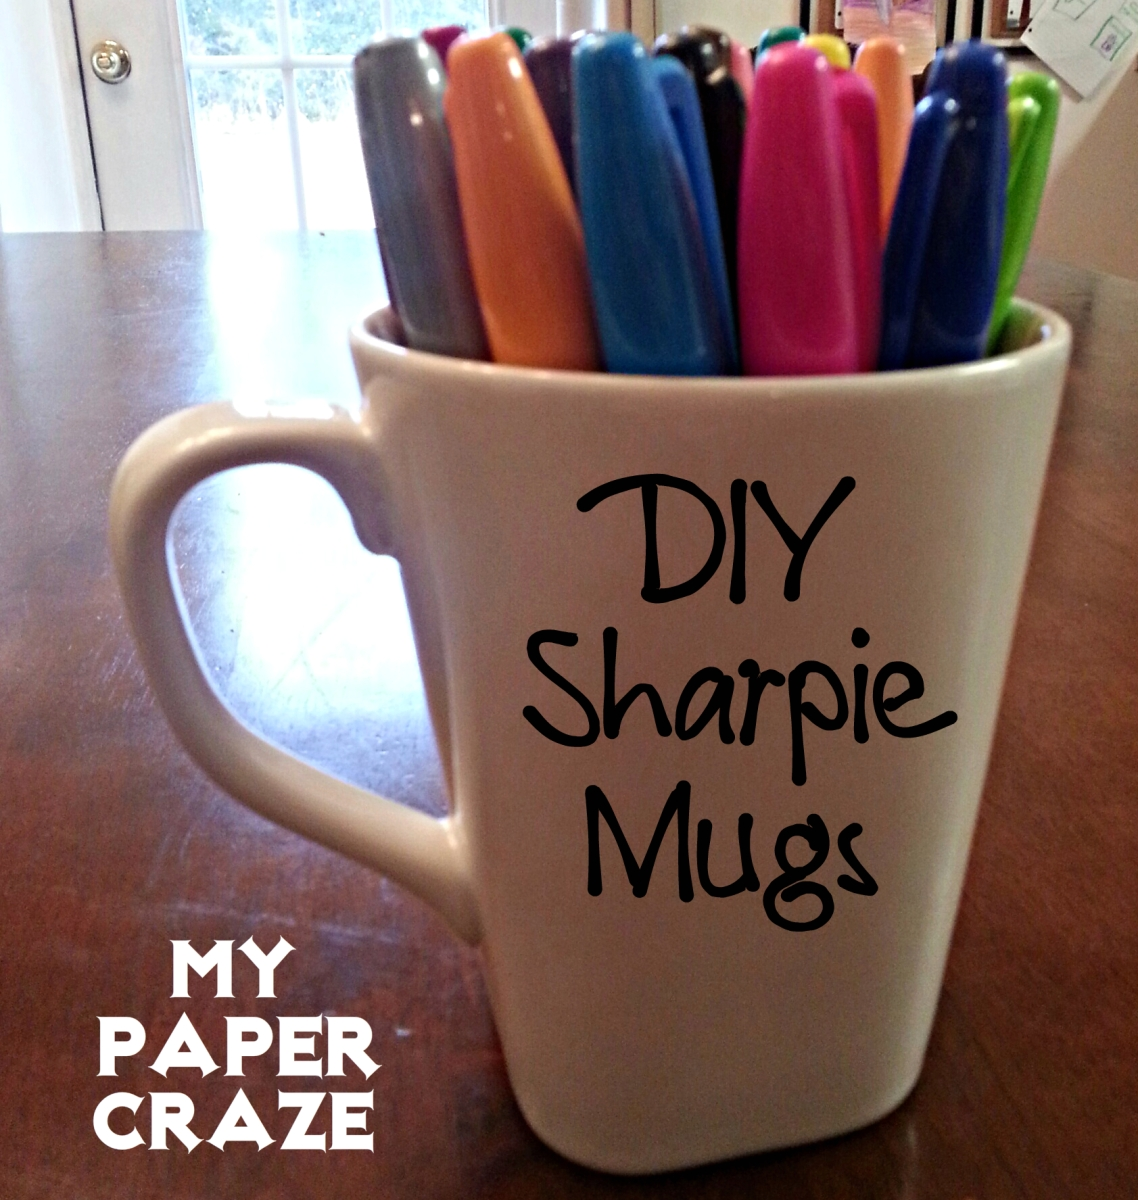 {DIY} Sharpie Mugs!